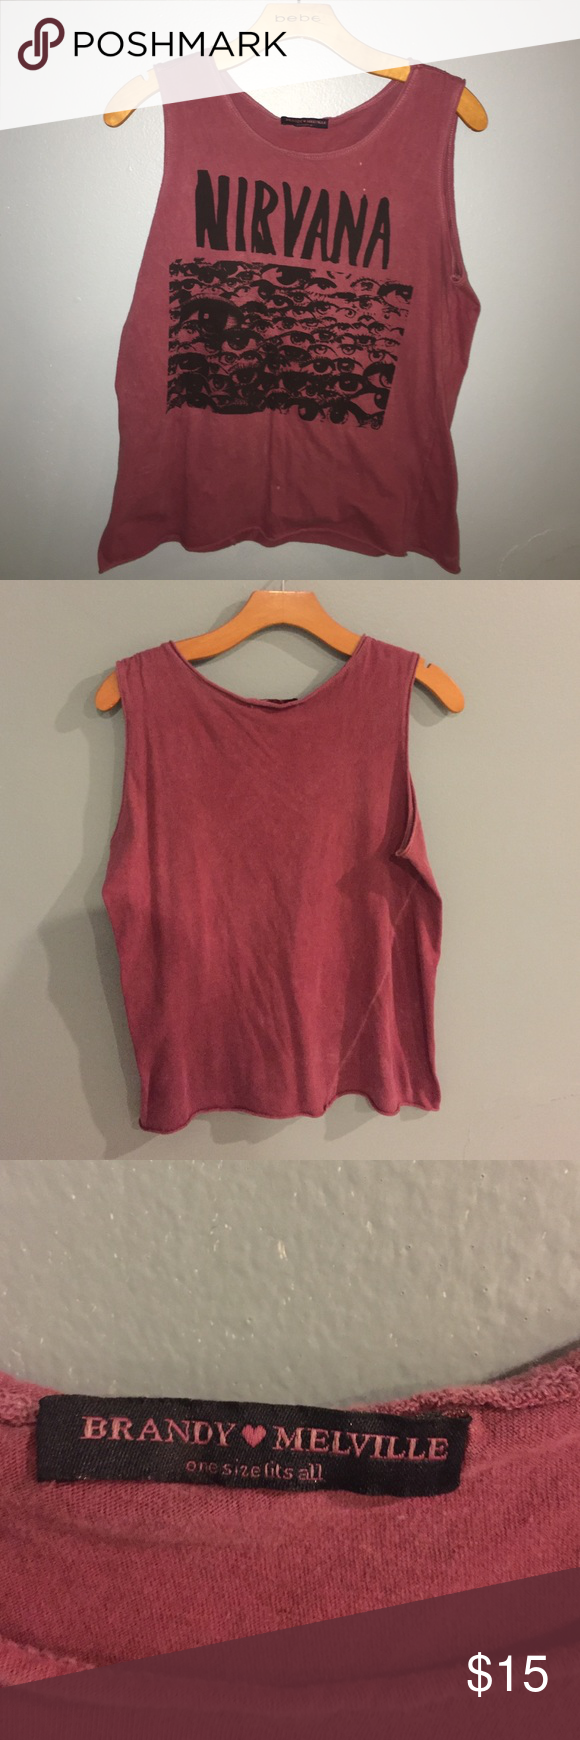 27ba4747 Brandy Melville Nirvana Muscle Tank Really cool faded burgundy red color.  In perfect condition,